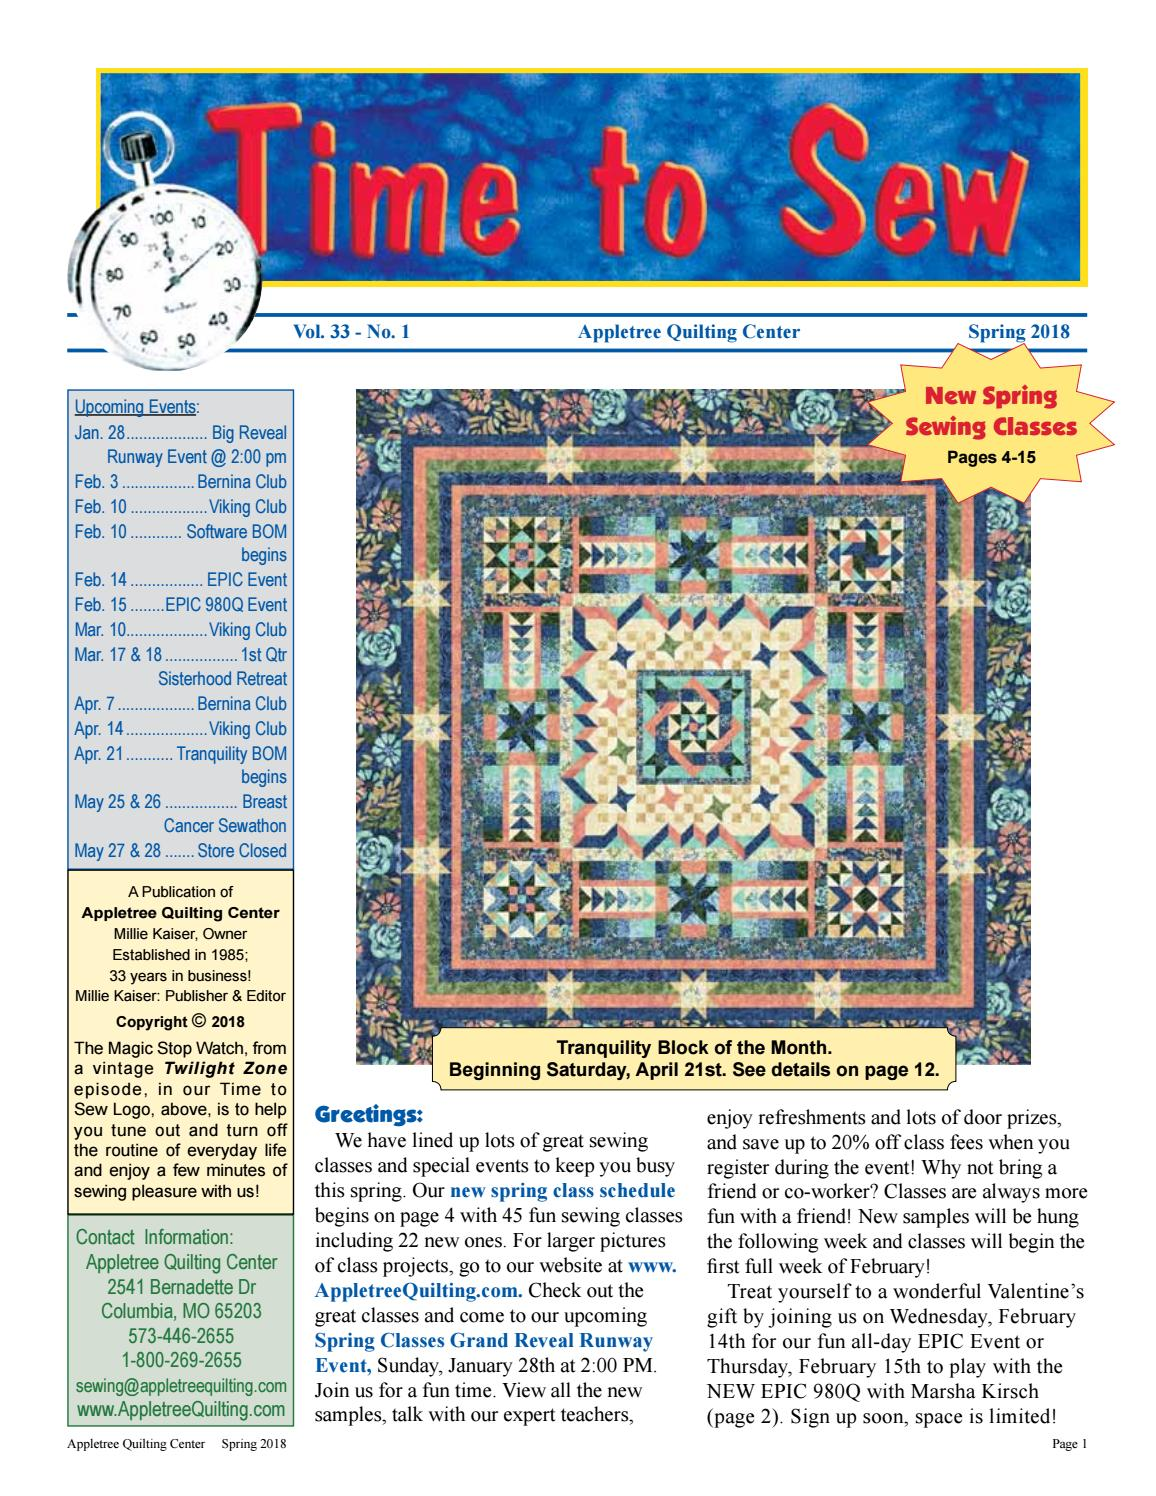 Appletree Quilting Center's Spring 2018 Newsletter by